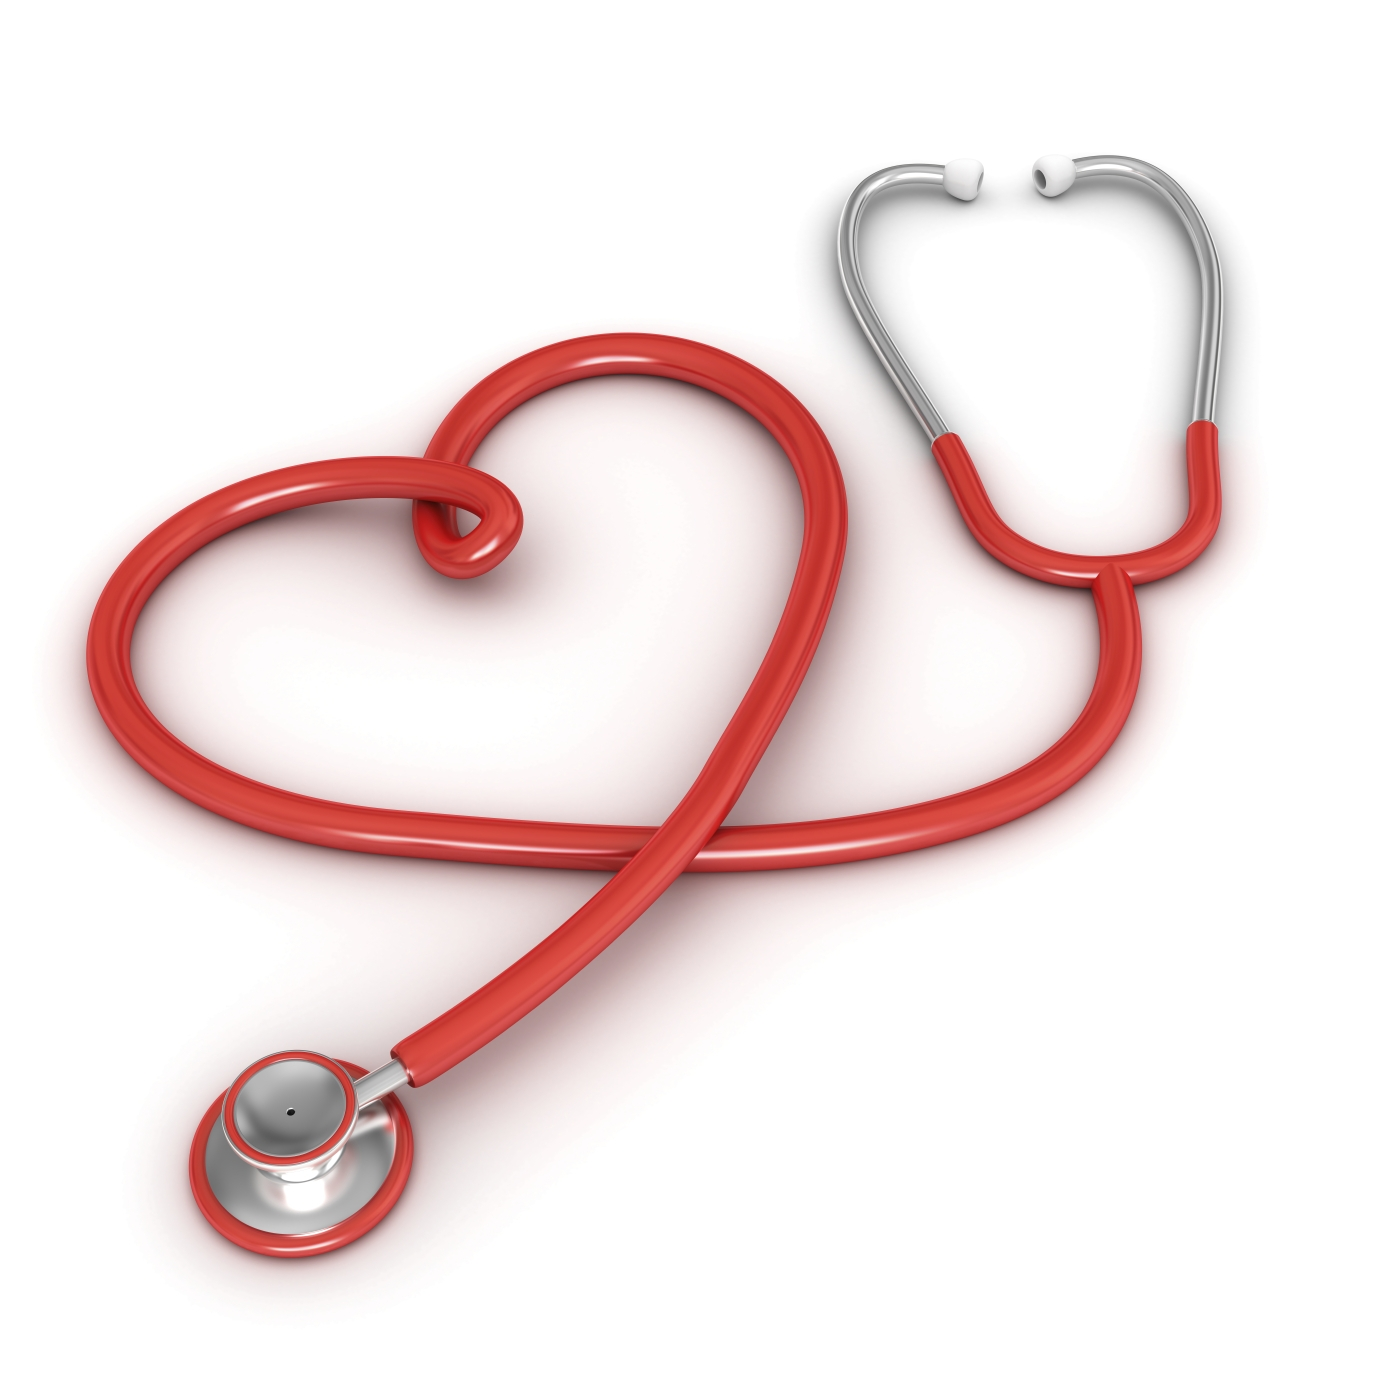 Stethoscope cliparts and others art inspiration